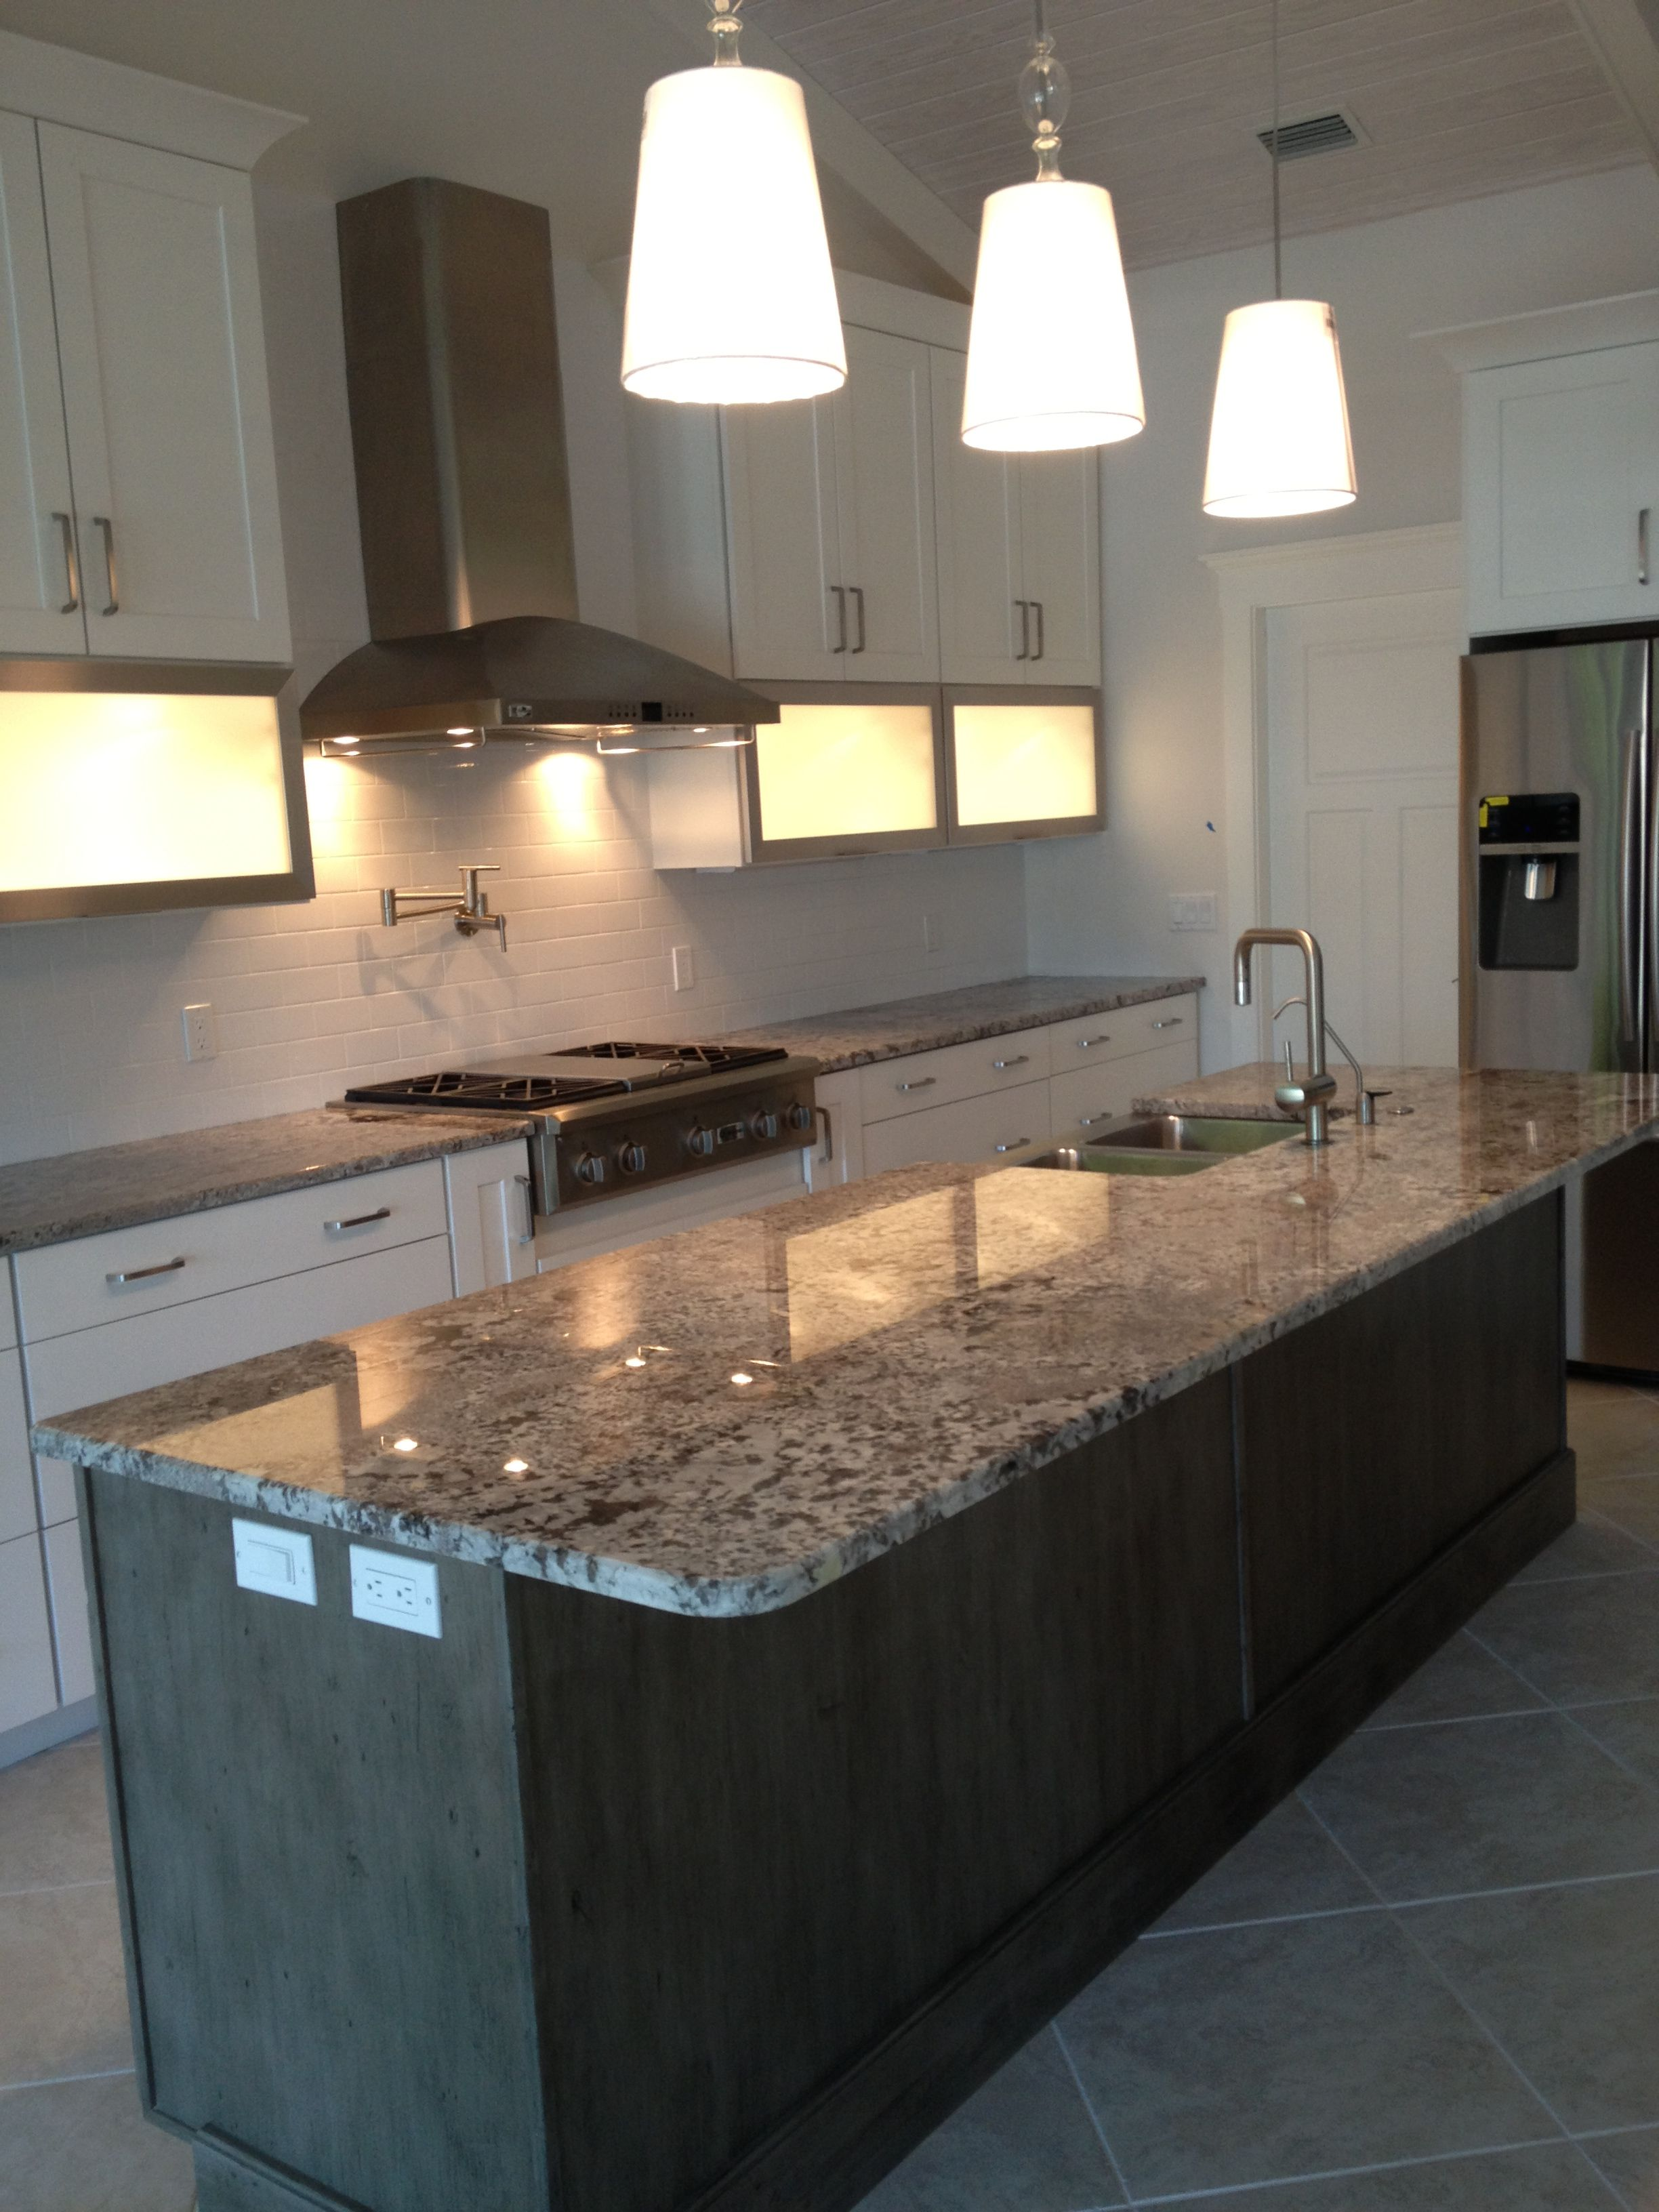 lighted upper cabinets upper cabinets kitchen decor on kitchen cabinets upper id=71450